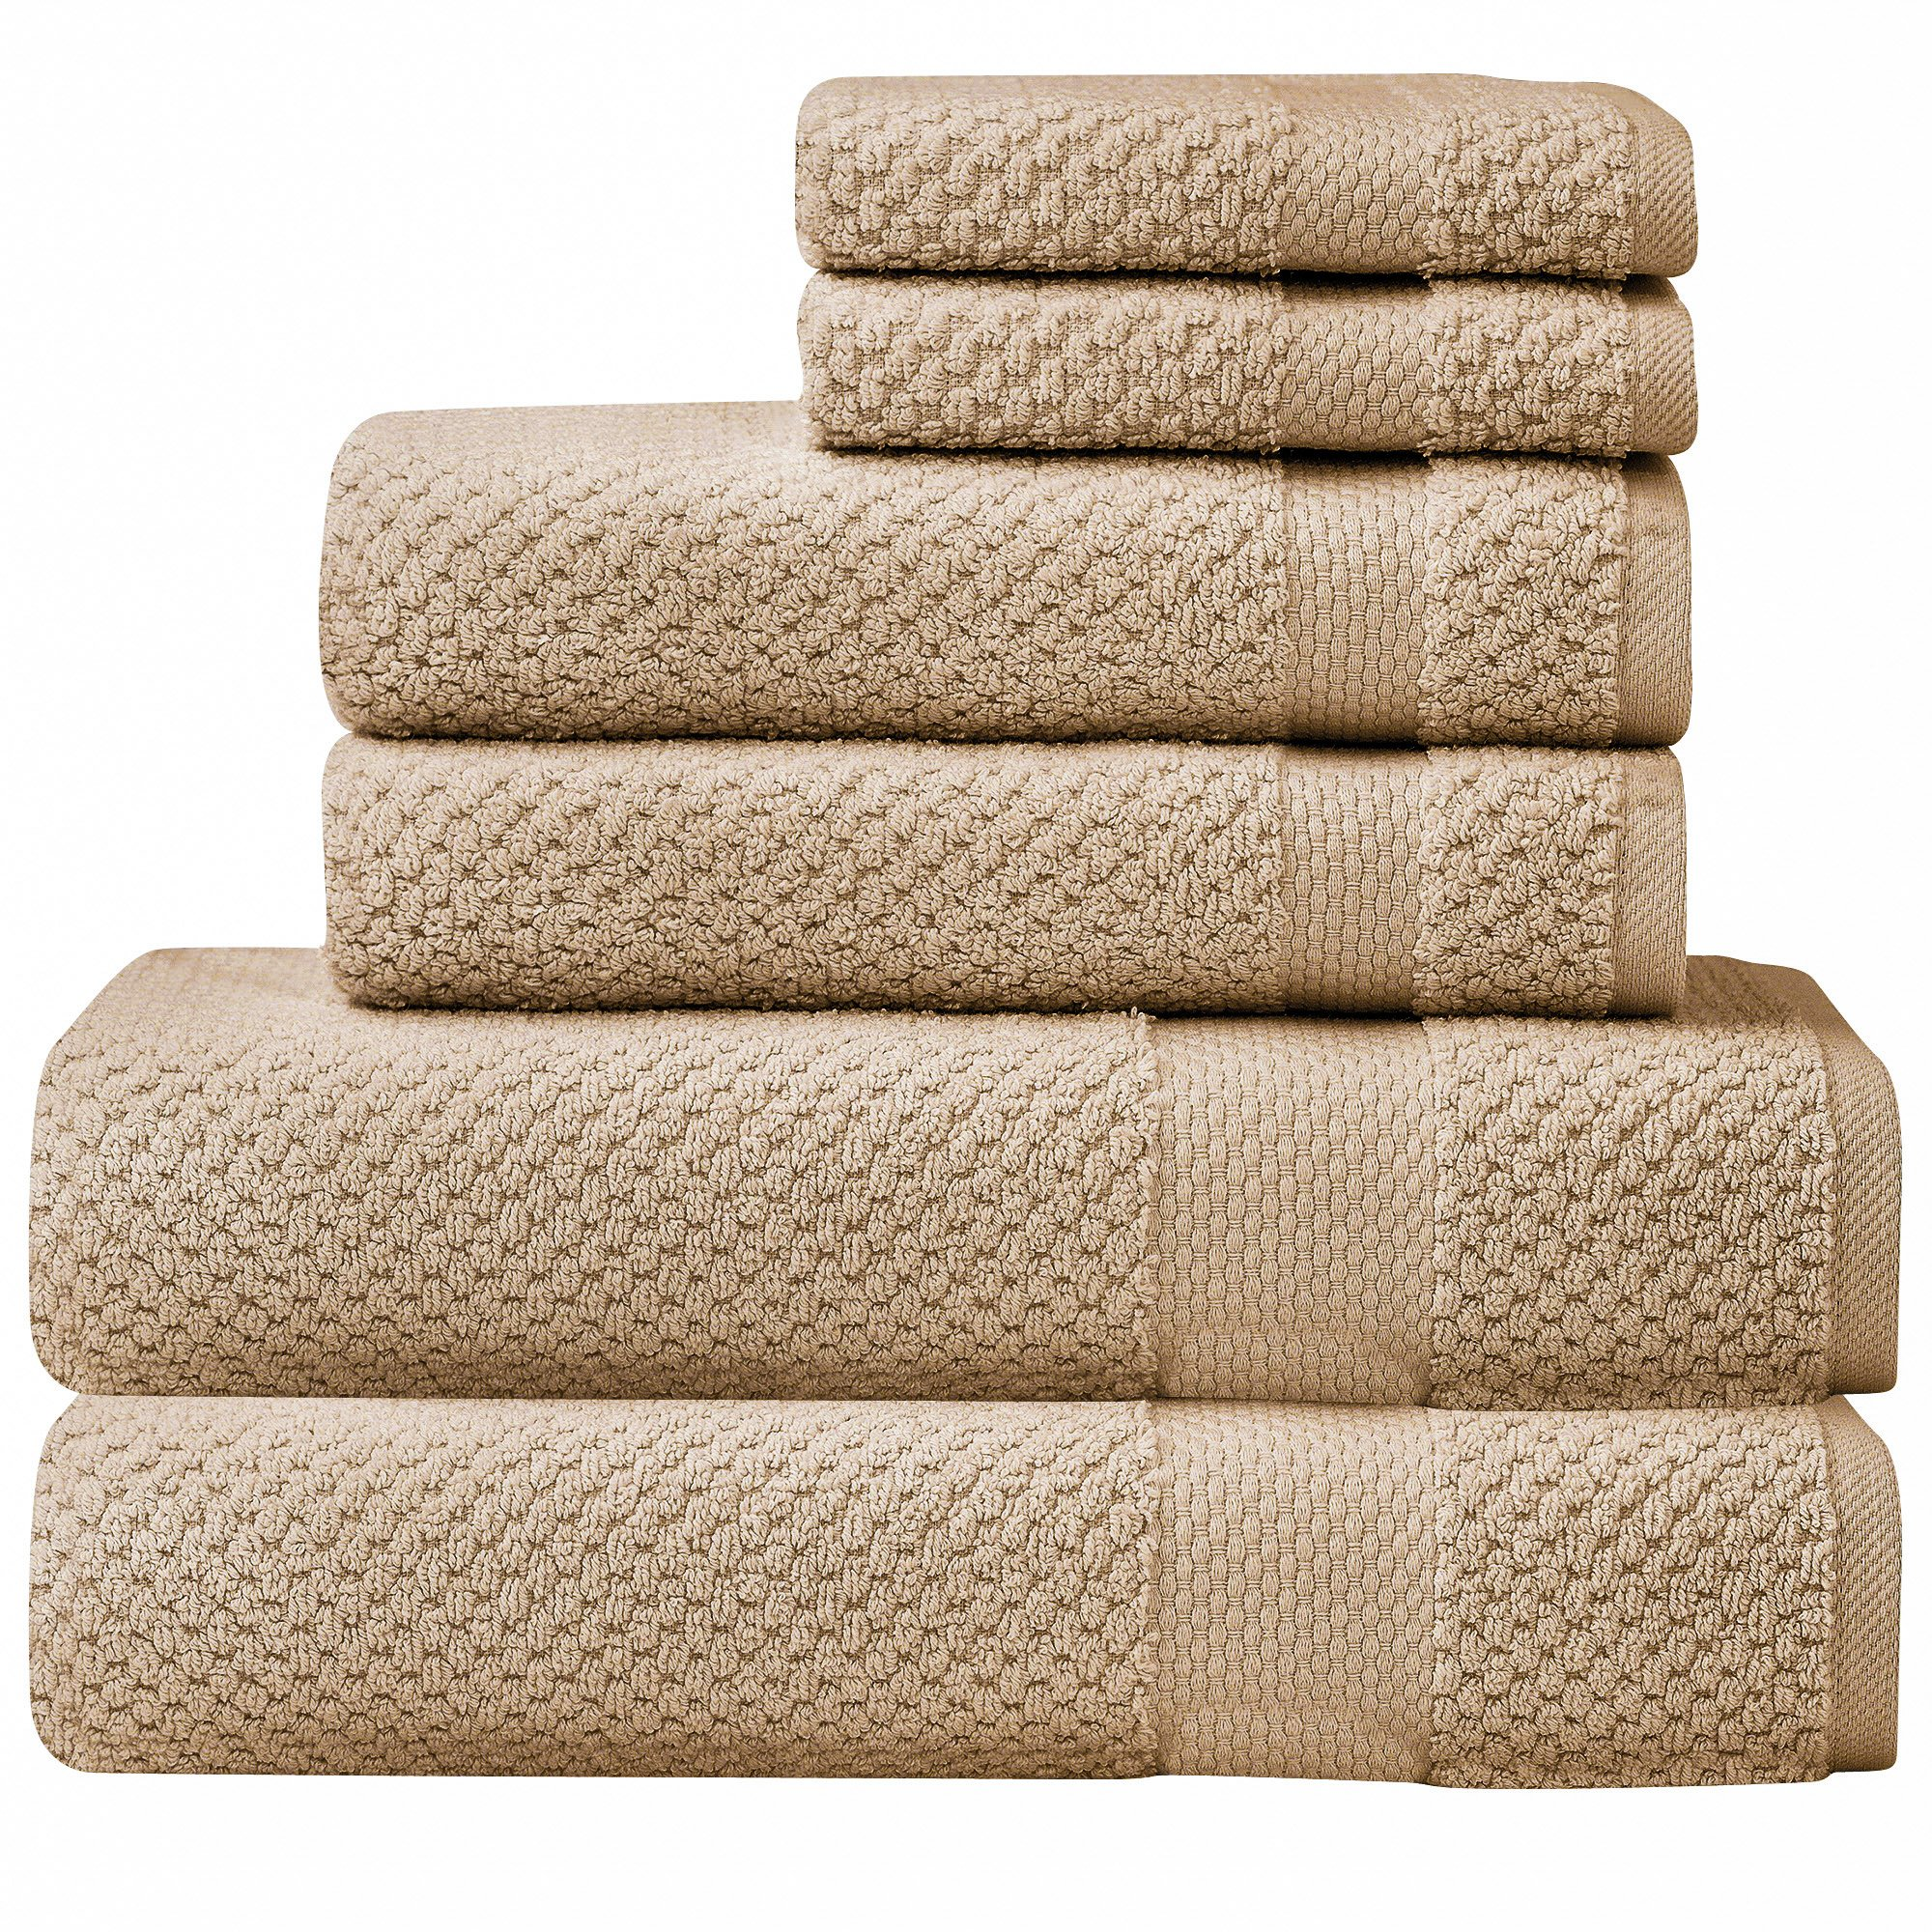 SALBAKOS : 6 piece Oviedo Bath Towel Set - 600gsm Premium Turkish Cotton (Beige)